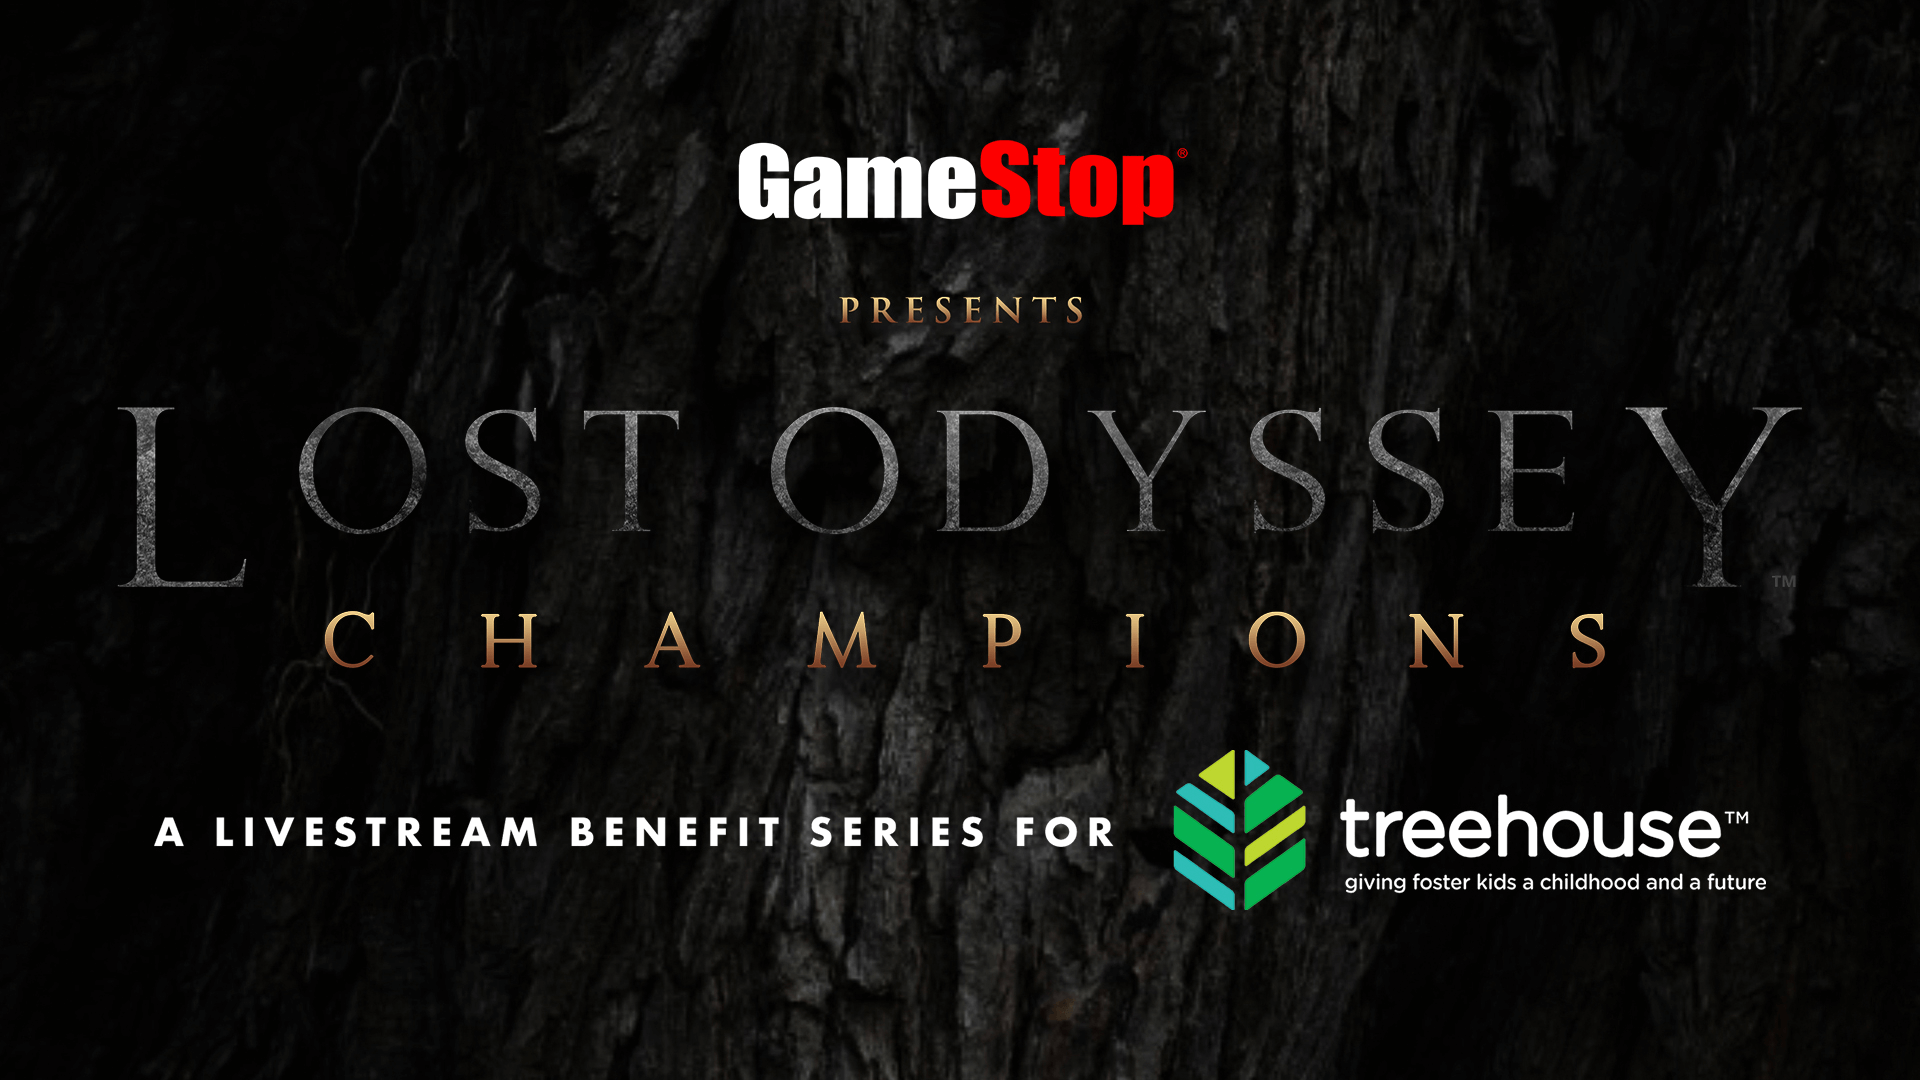 Lost Odyssey: Champions Charity Event by Gamestop